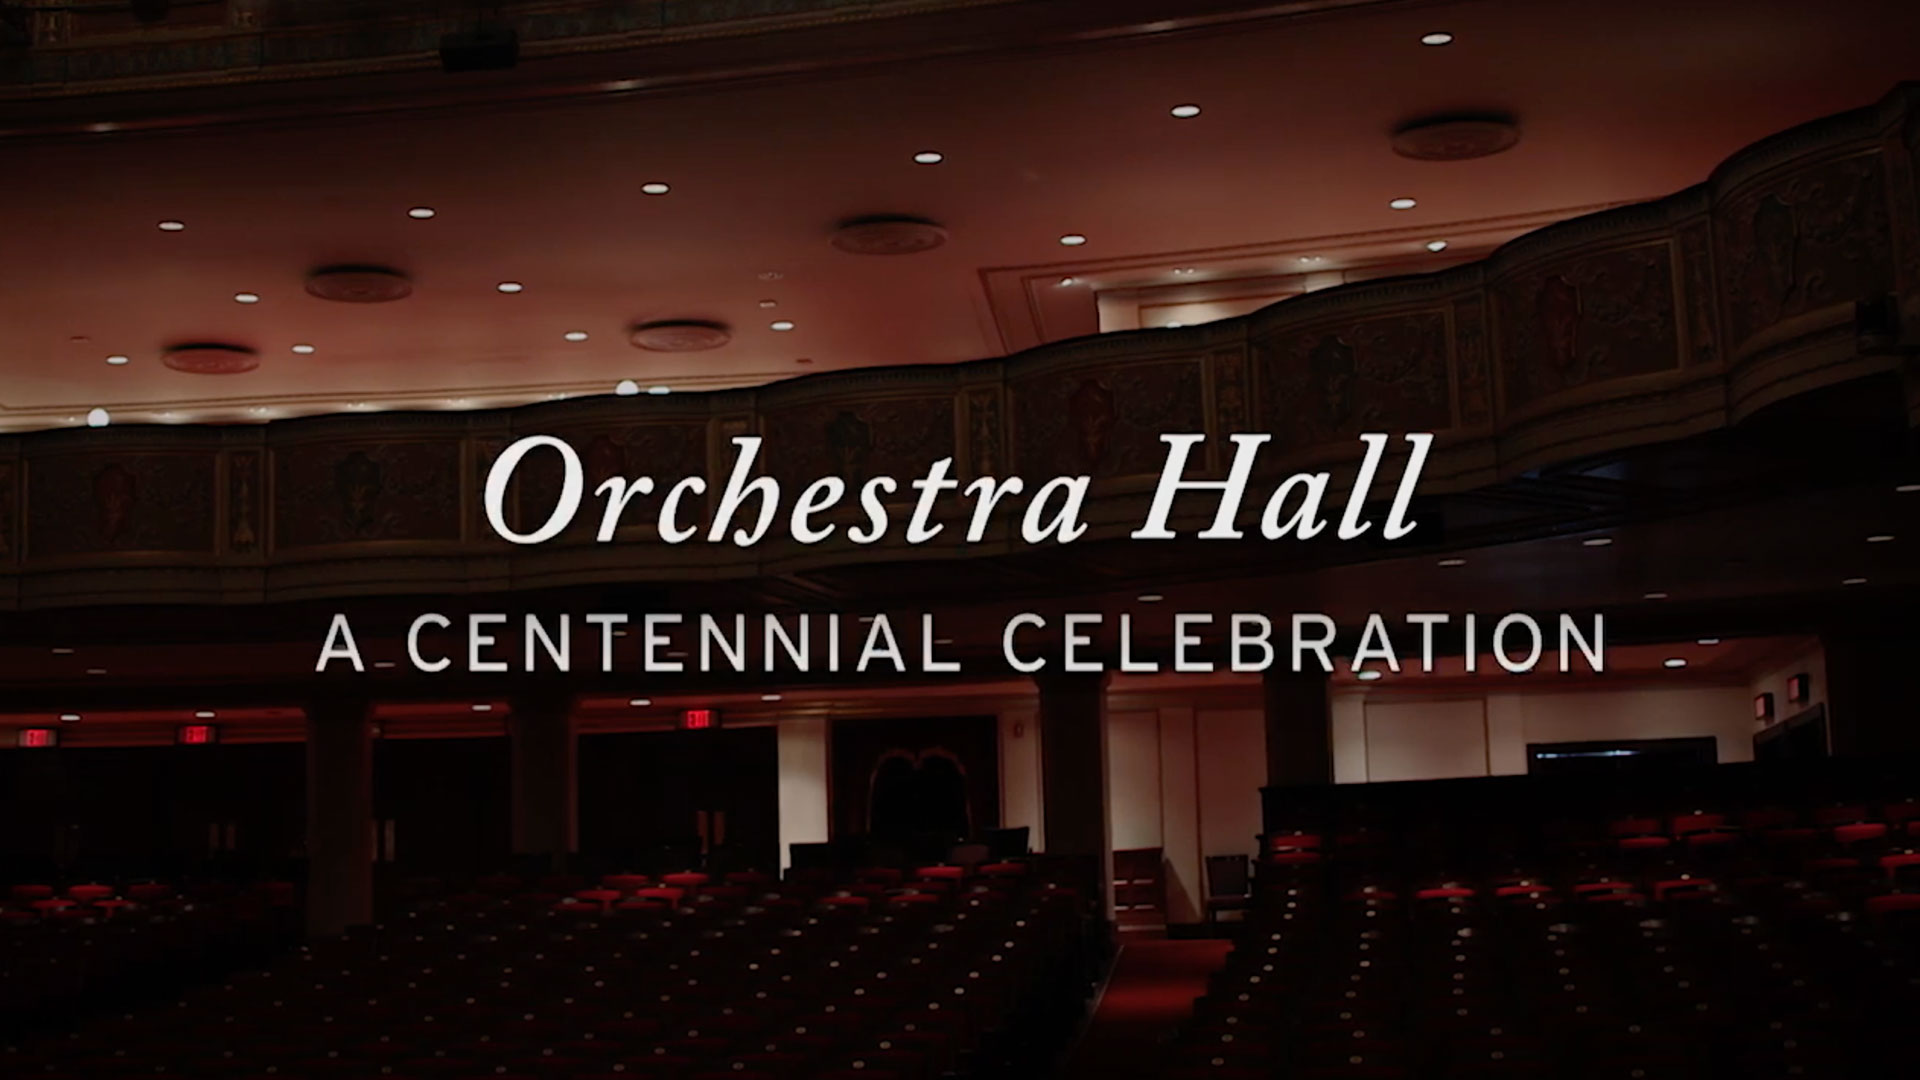 Orchestra Hall – A Centennial Celebration